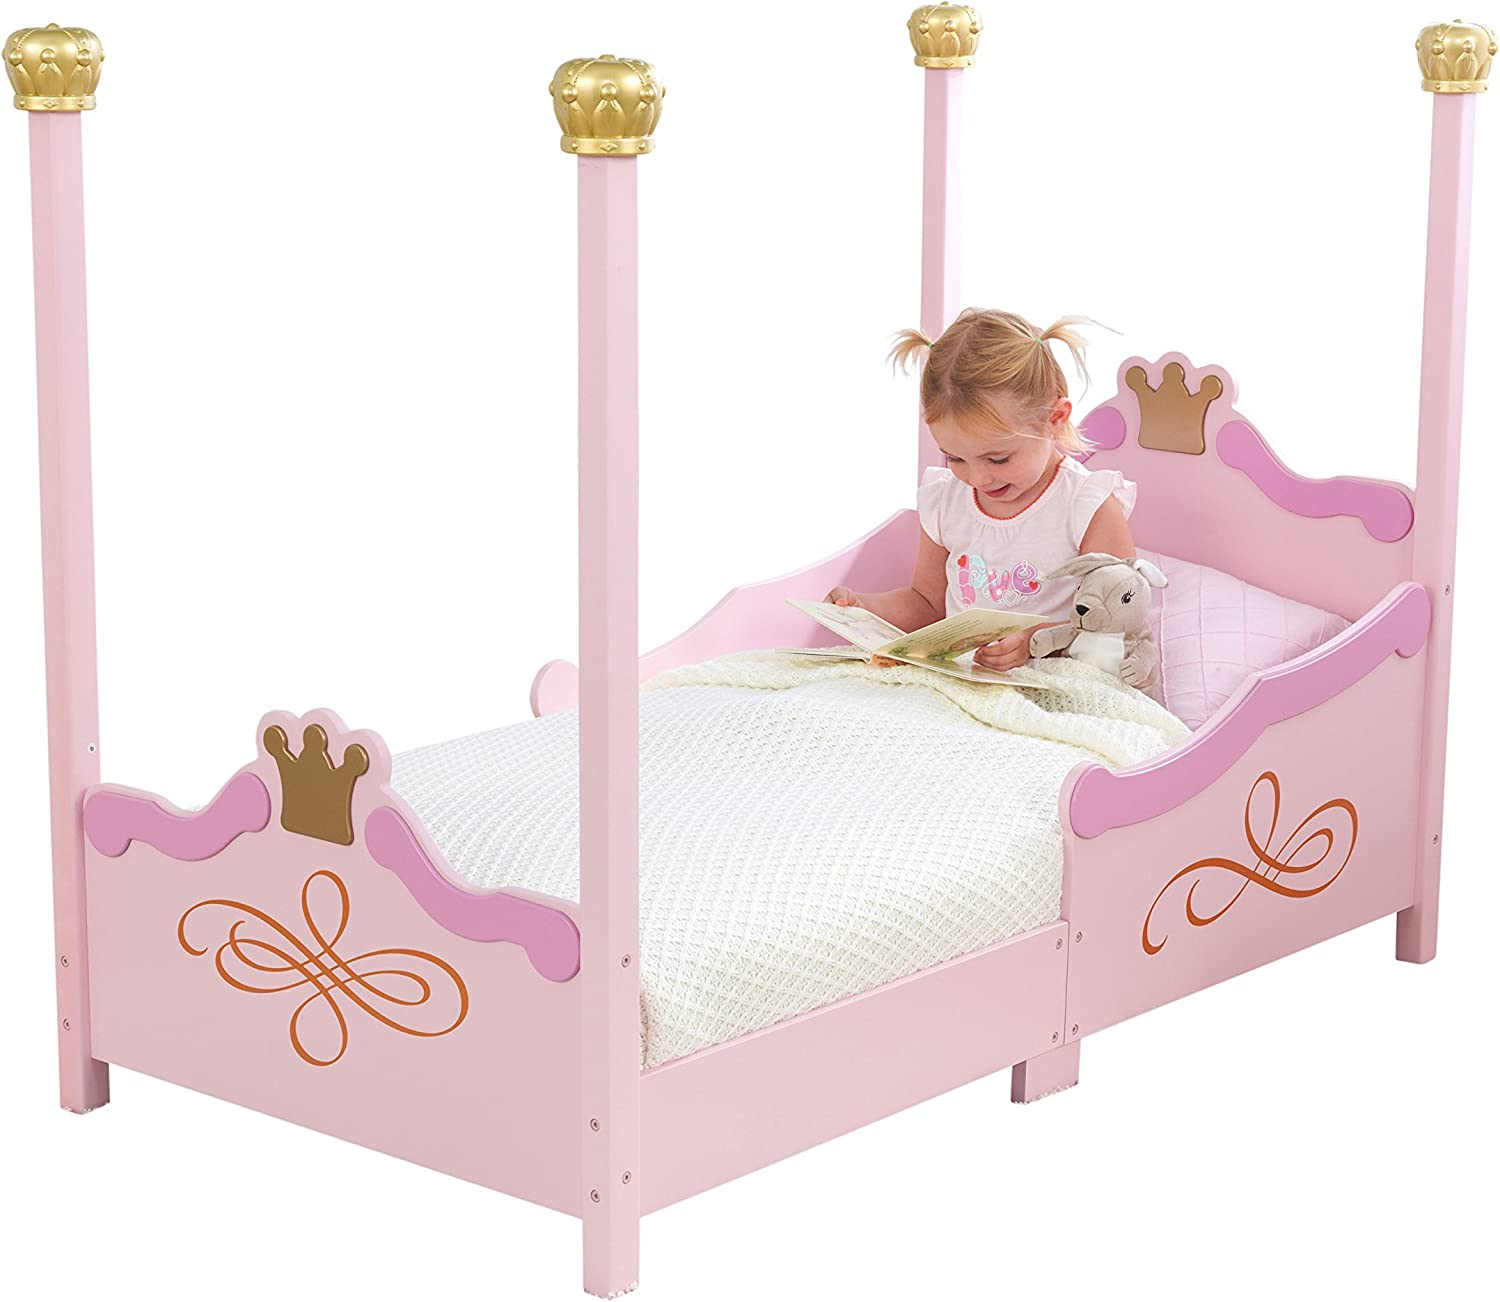 B0006NI4DG Princess Toddler Bed 810nk2e84CL.SL1500_